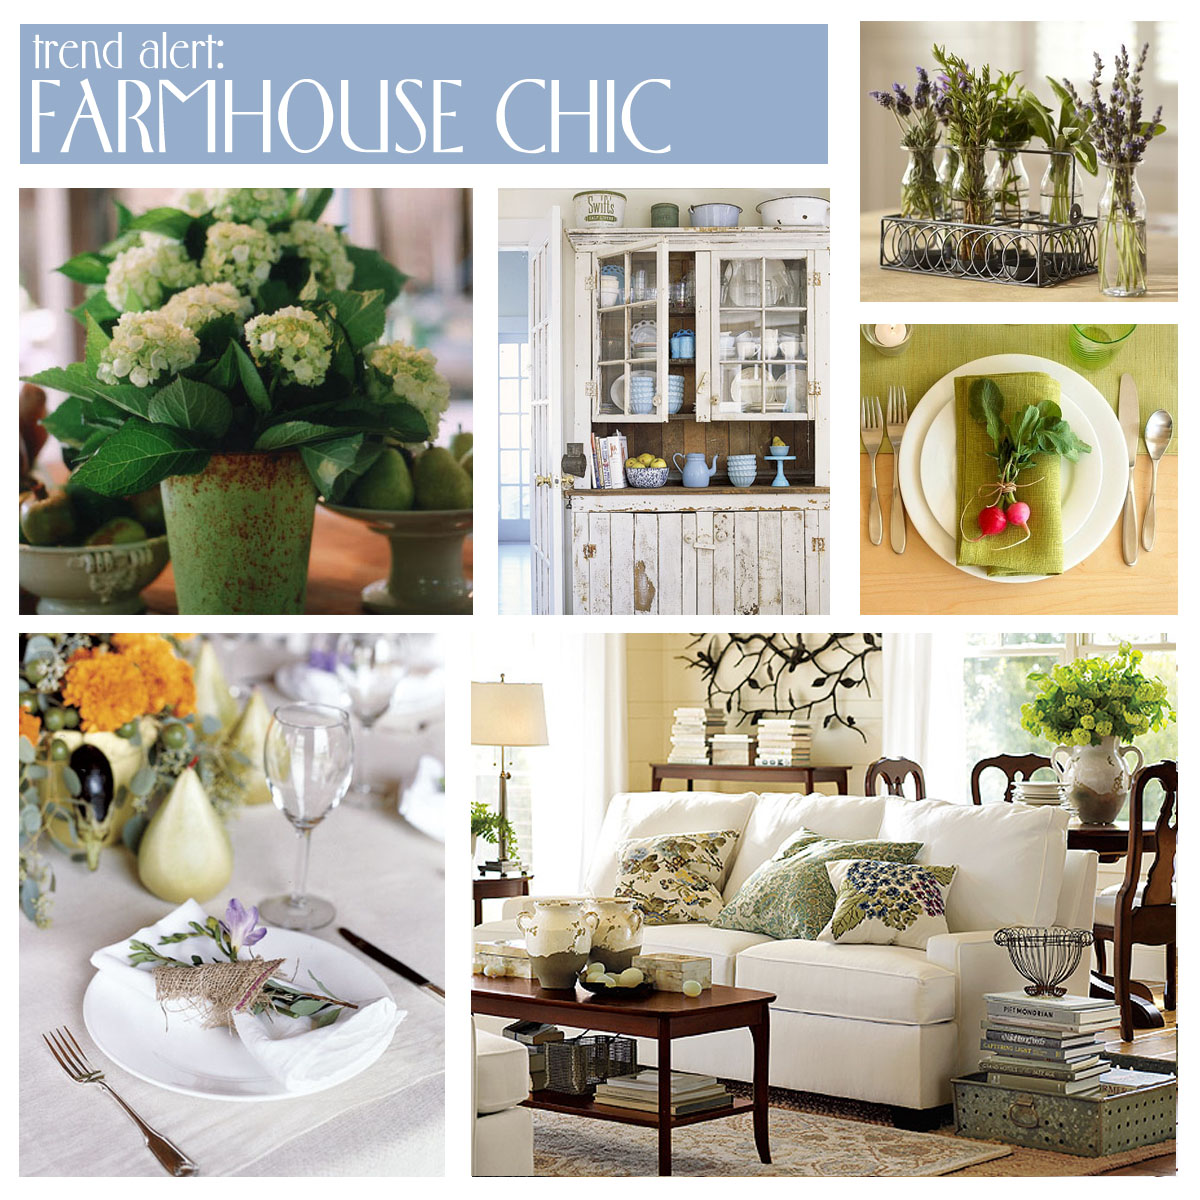 Farmhouse Chic Decorating | #LivingAfterMidnite